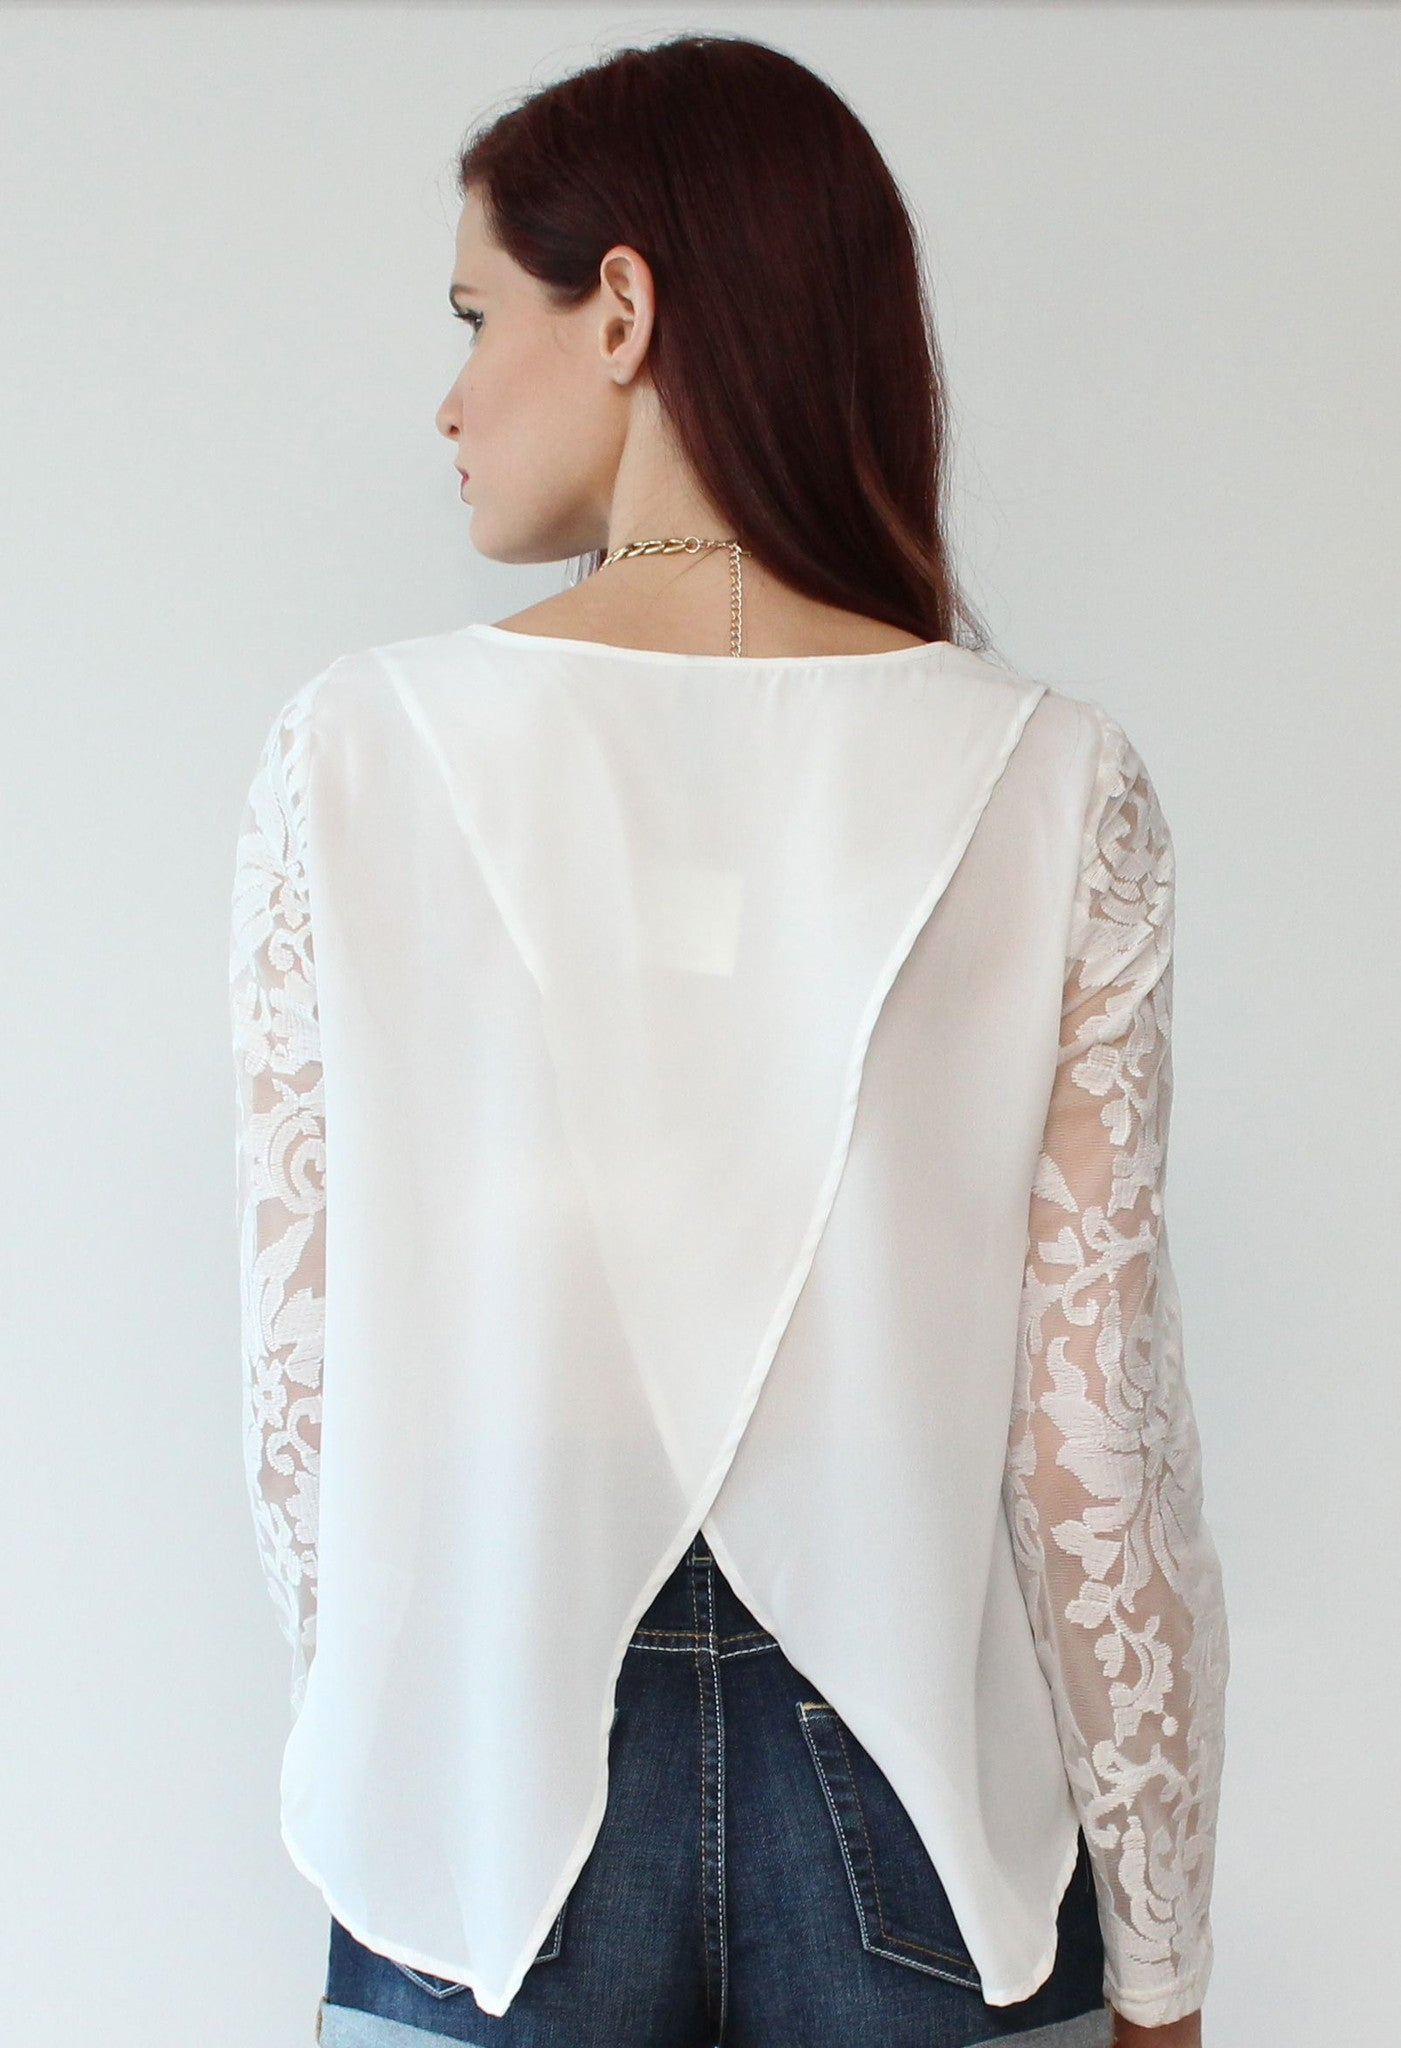 Very Extraordinary White Lace Long Sleeves Top